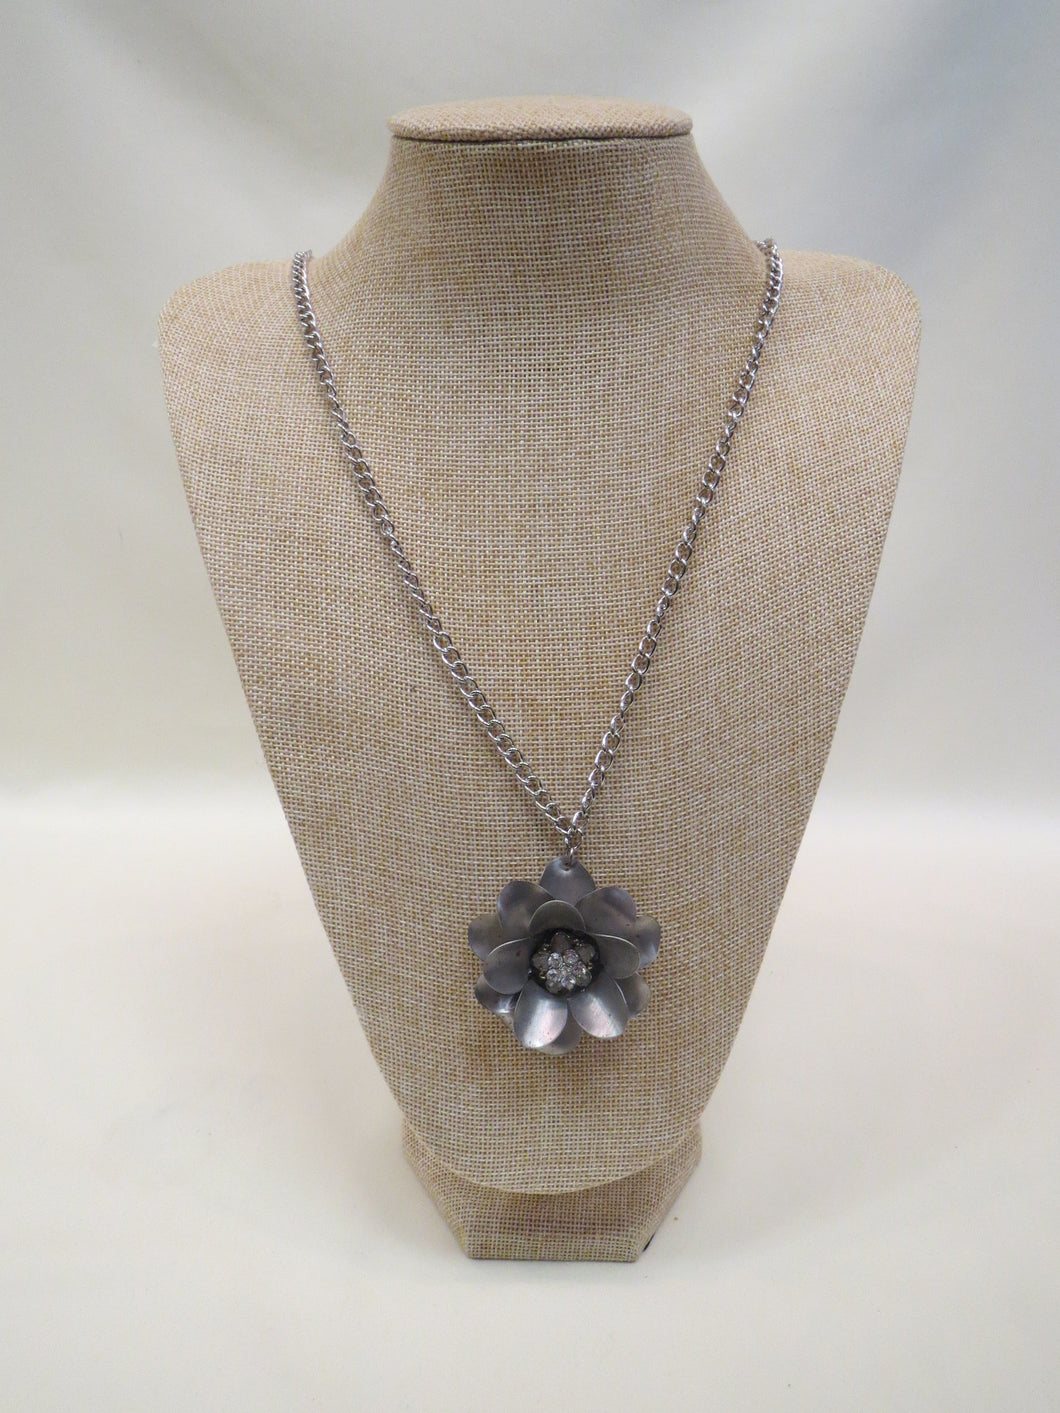 ADO | Embellished Metal Rose on Long Adjustable Chain - All Decd Out